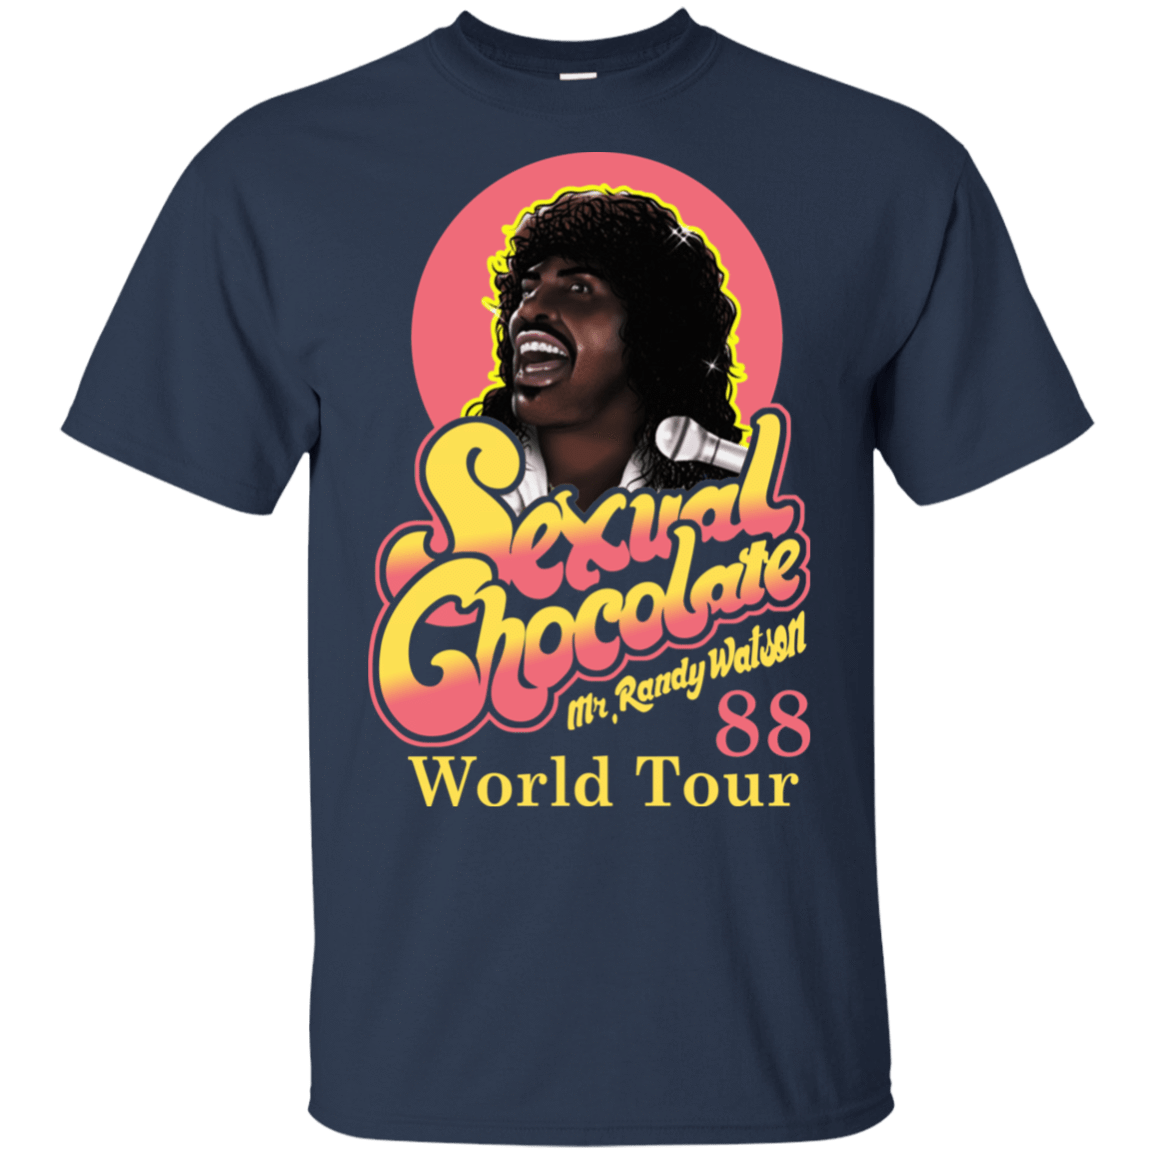 Sexual Chocolate 88' World Tour Randy Watson 22-111-72932534-250 - Tee Ript